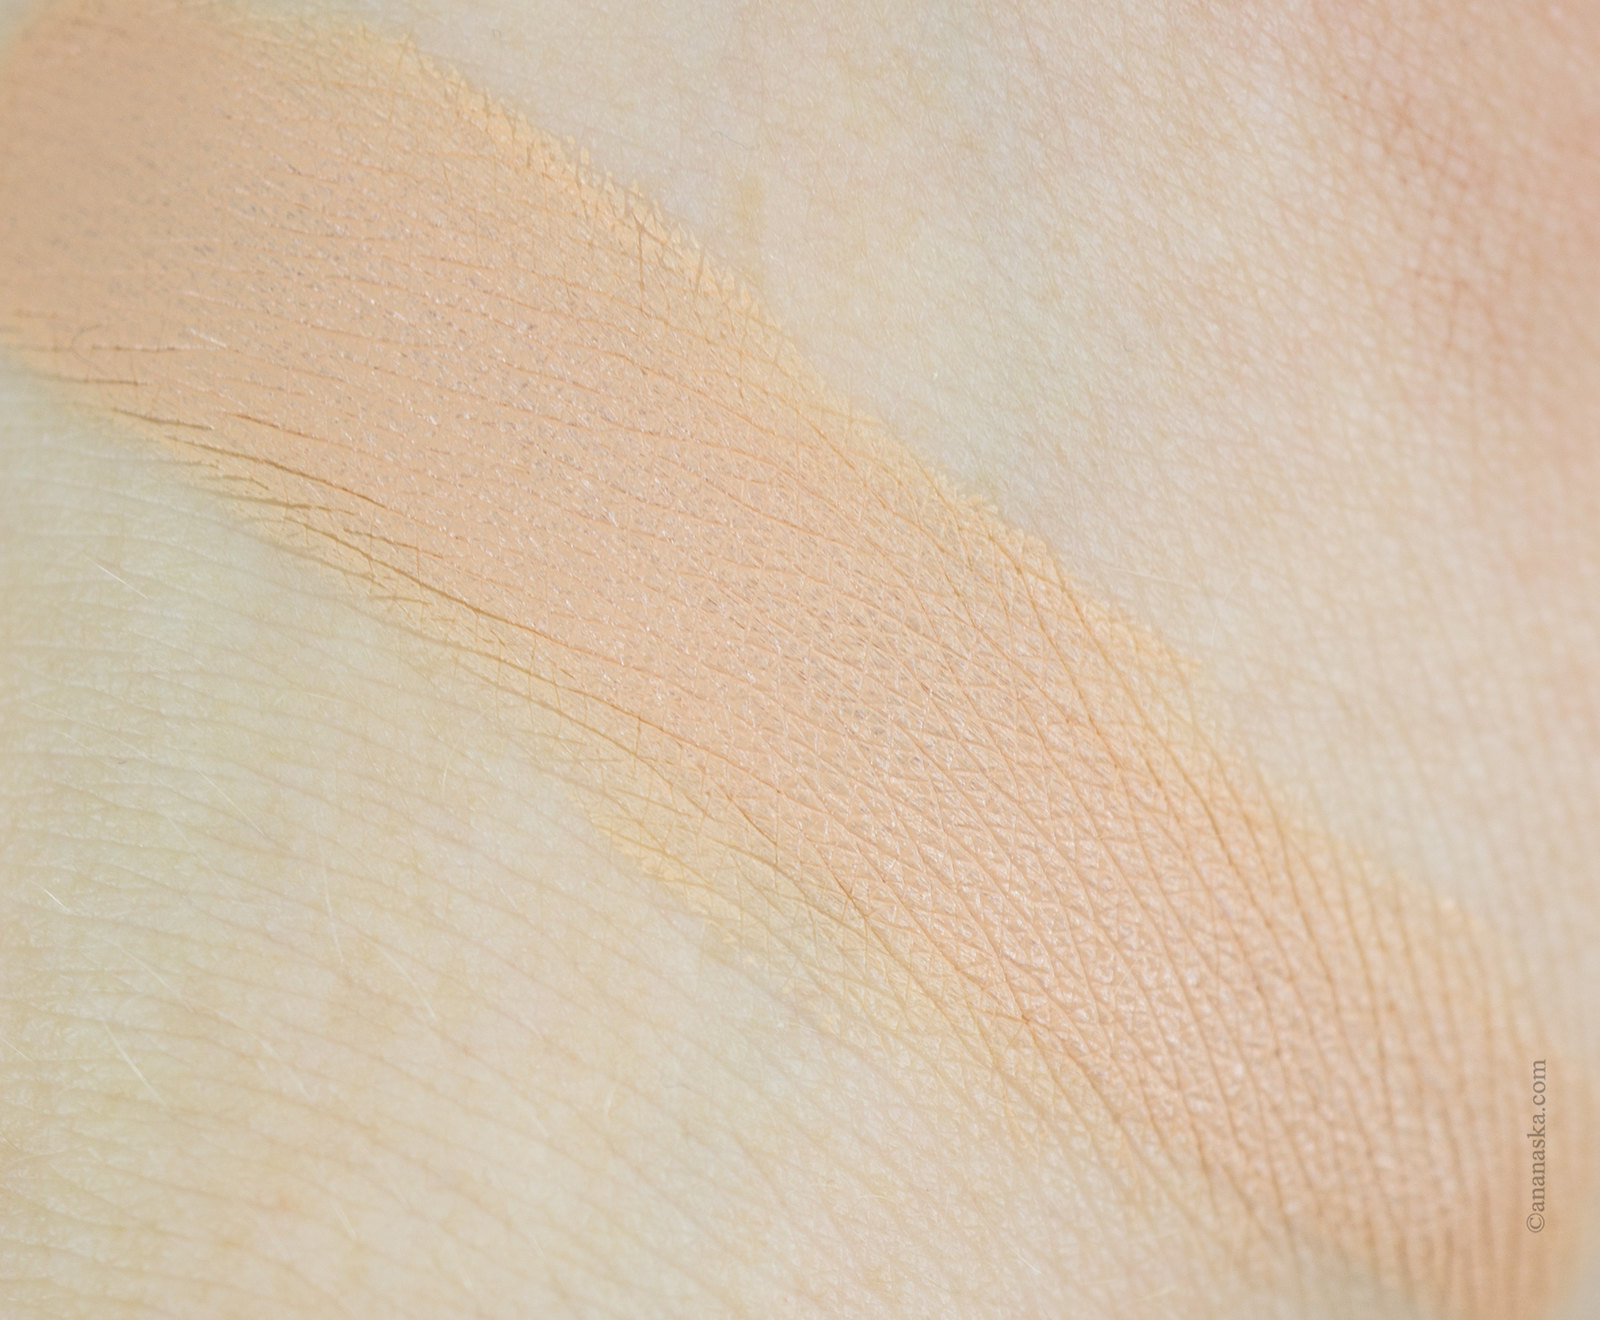 Benefit Boi-ing Industrial Strength Concealer 02 Medium